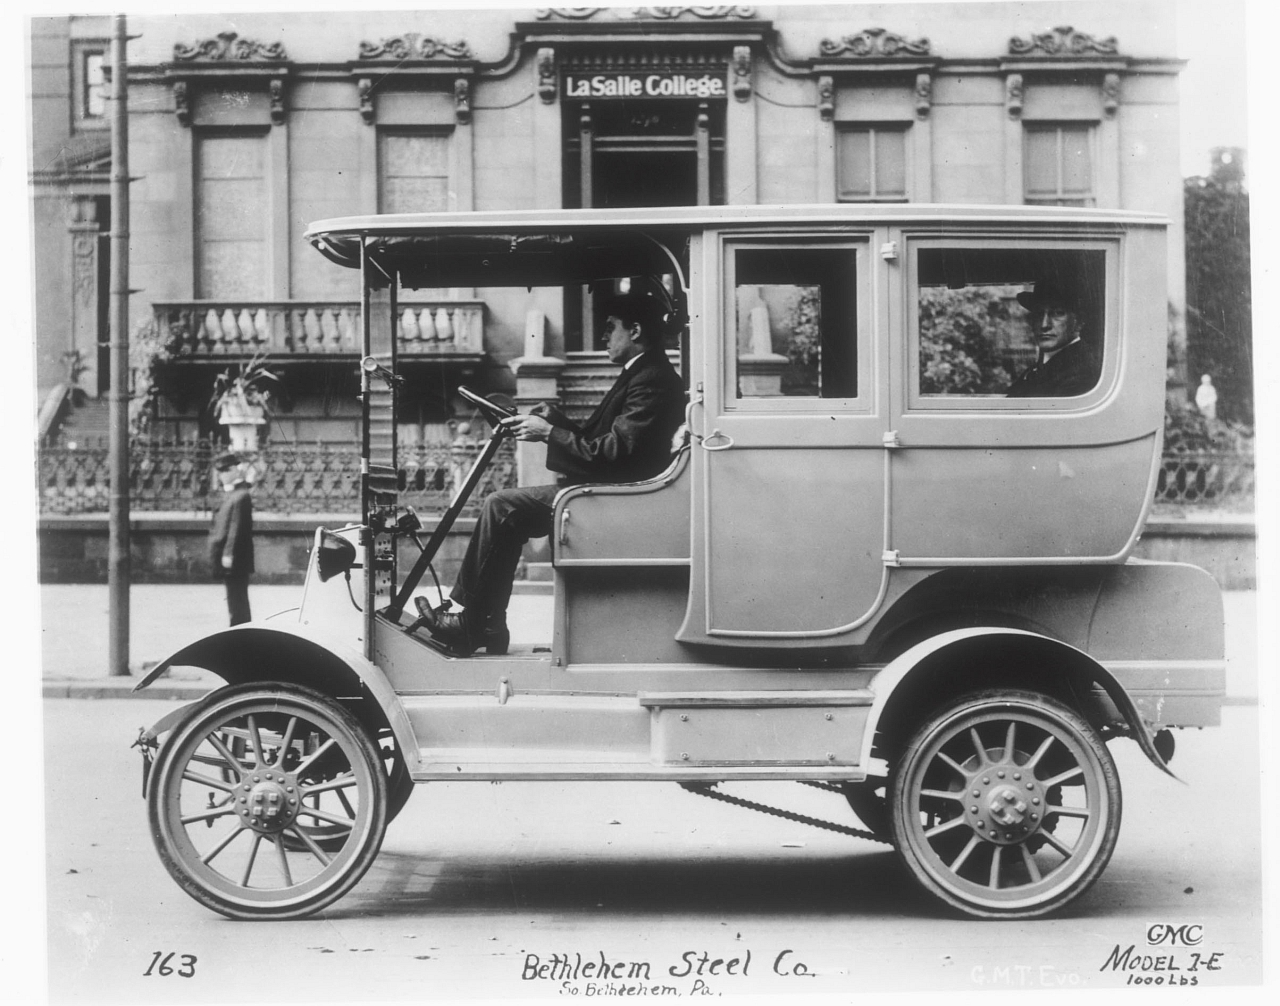 an introduction to the history of the gm motors company From the first buick horseless carriages to the chevy volt, general motors has  played a pivotal role in the global auto industry for more than 100 years.